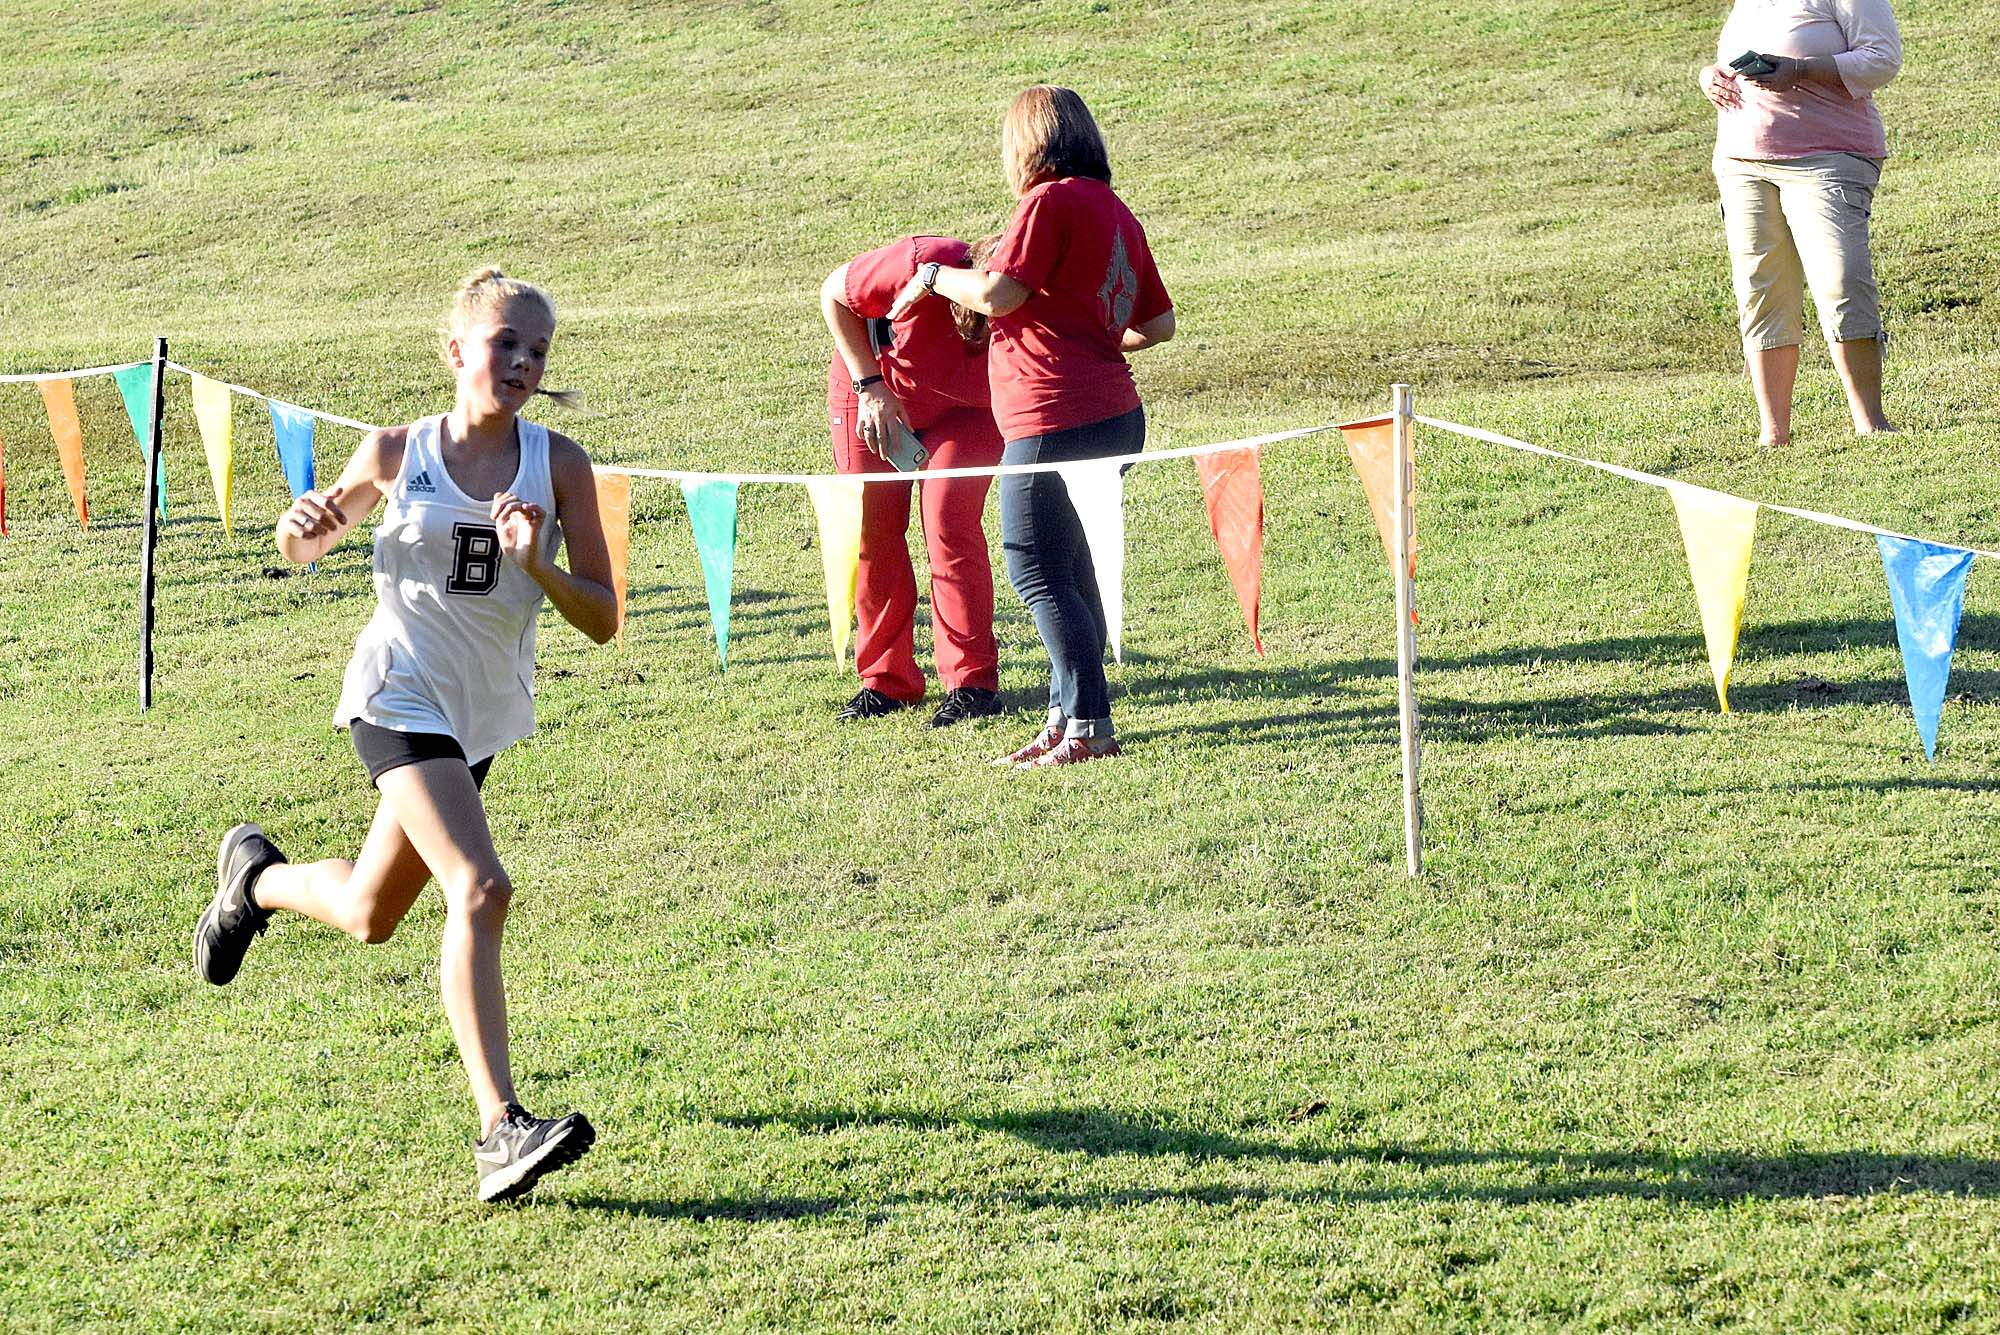 Benton High School's Hailey Wallace nears the finish line during the girls' race during the Mr. A Classic at the city park last week. Wallace finished third. Teammate Mia McLain won the girls' race with a winning time of 18:41.